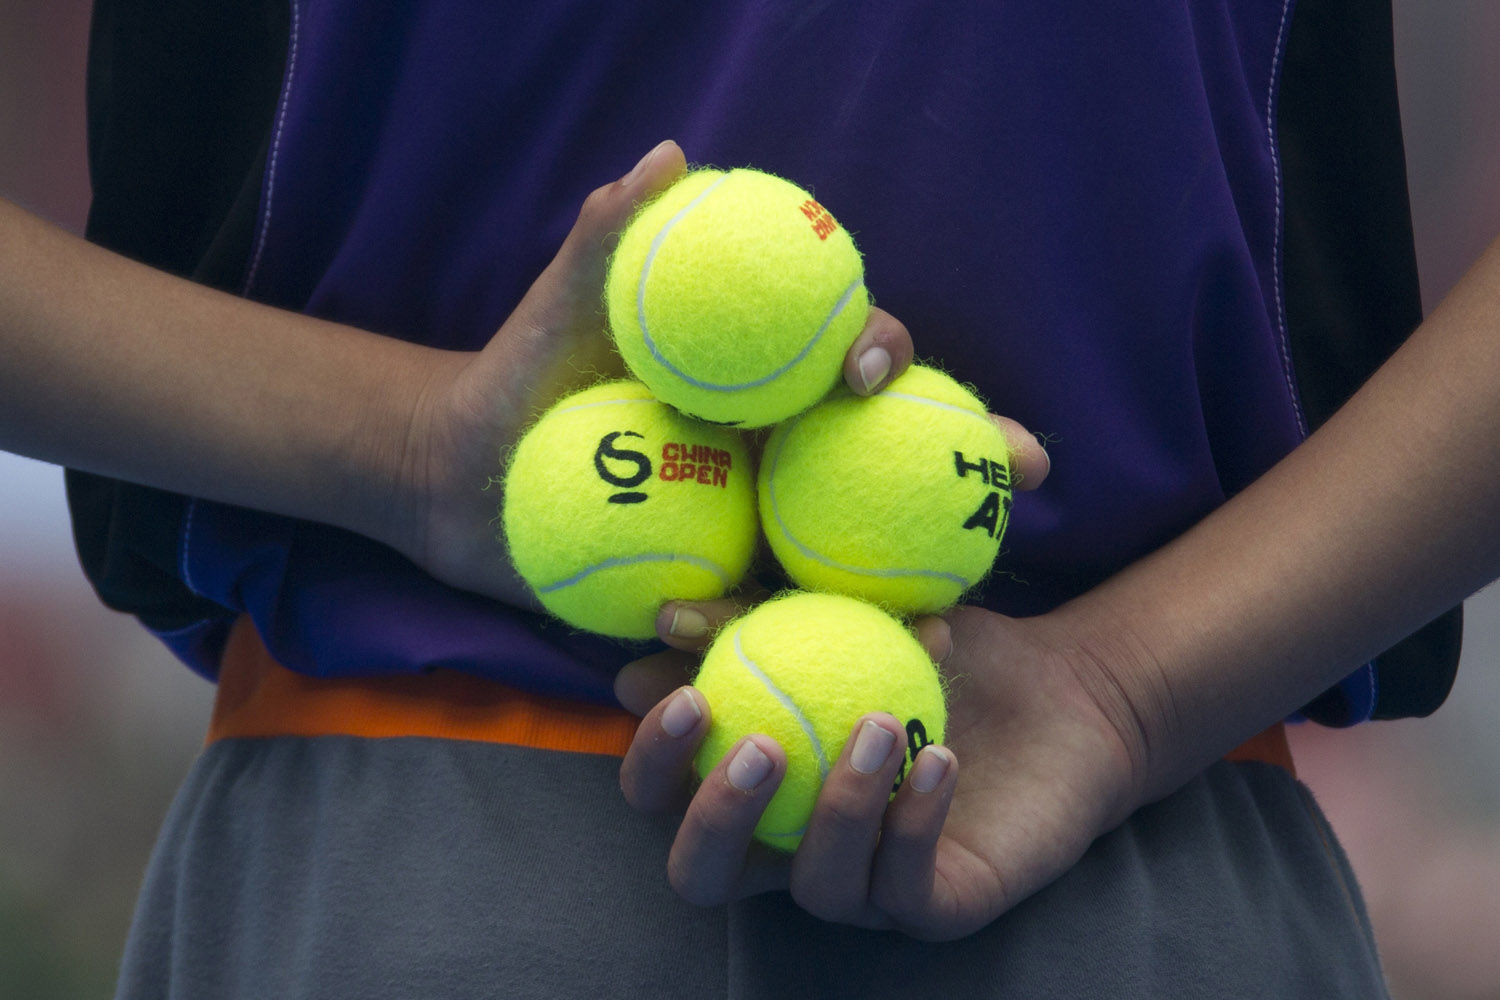 Oct. 5, 2013. A ball boy holds tennis balls before the semifinal match between Rafael Nadal of Spain and Tomas Berdych of the Czech Republic at the China Open tennis tournament at the National Tennis Stadium in Beijing.